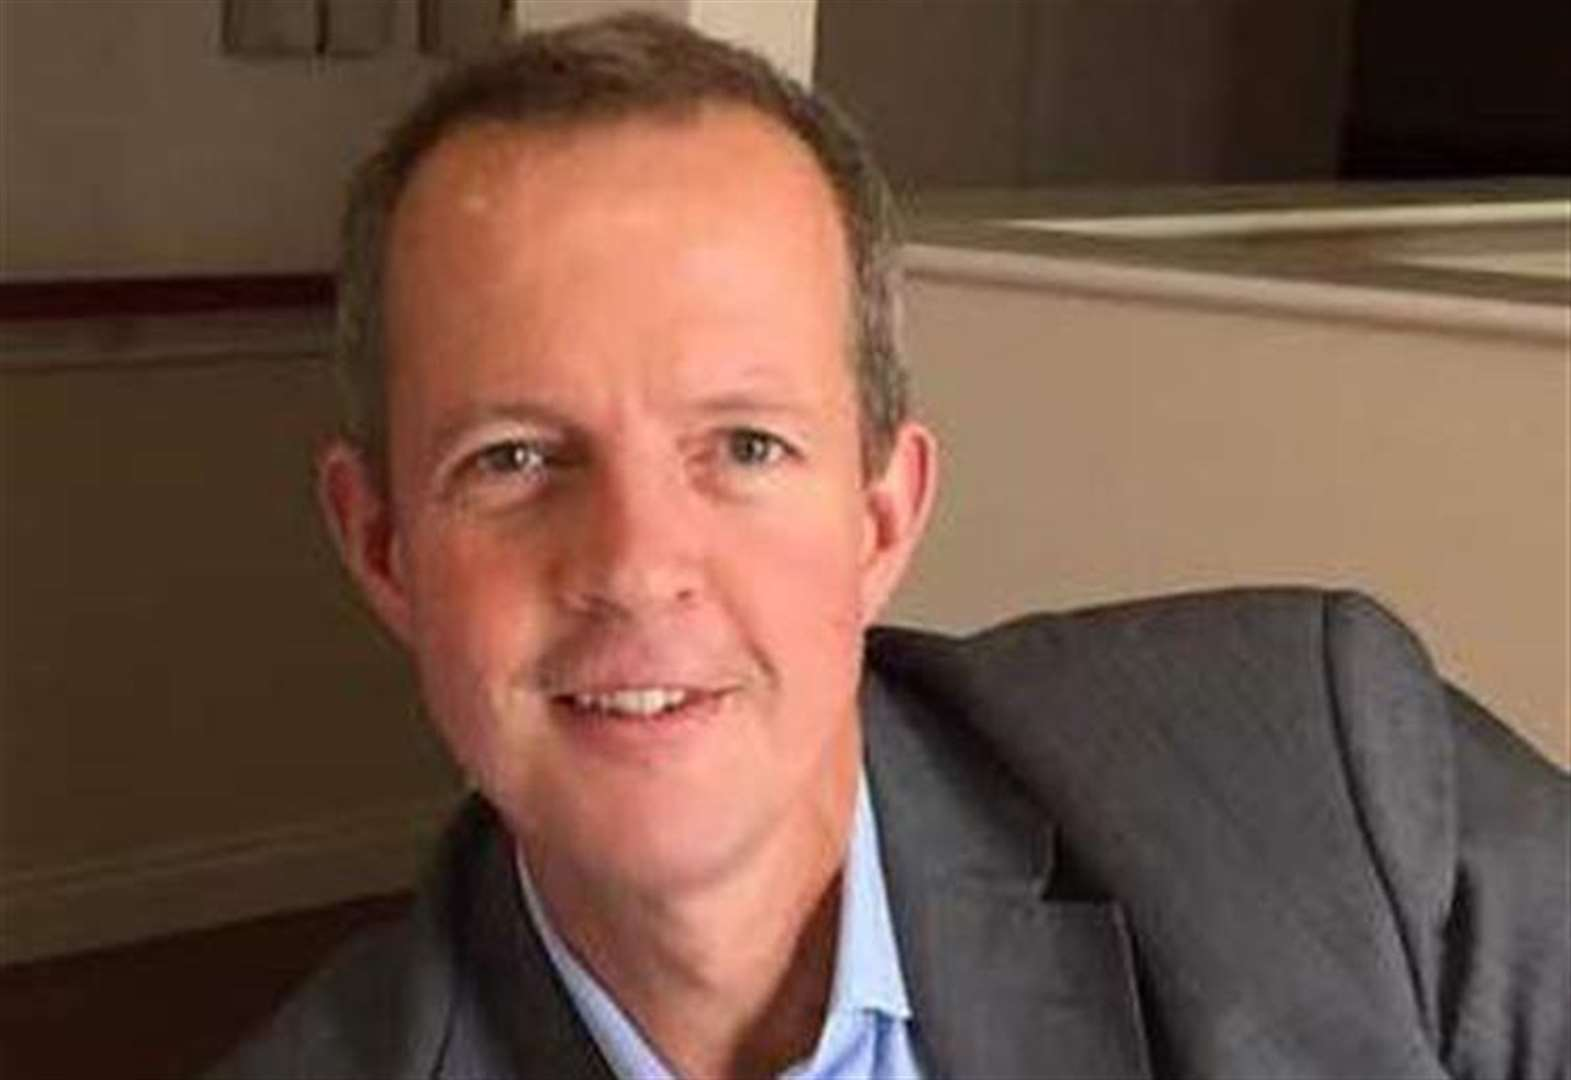 Stamford and Bourne MP Nick Boles advises: 'Don't compare anyone to Nazis'